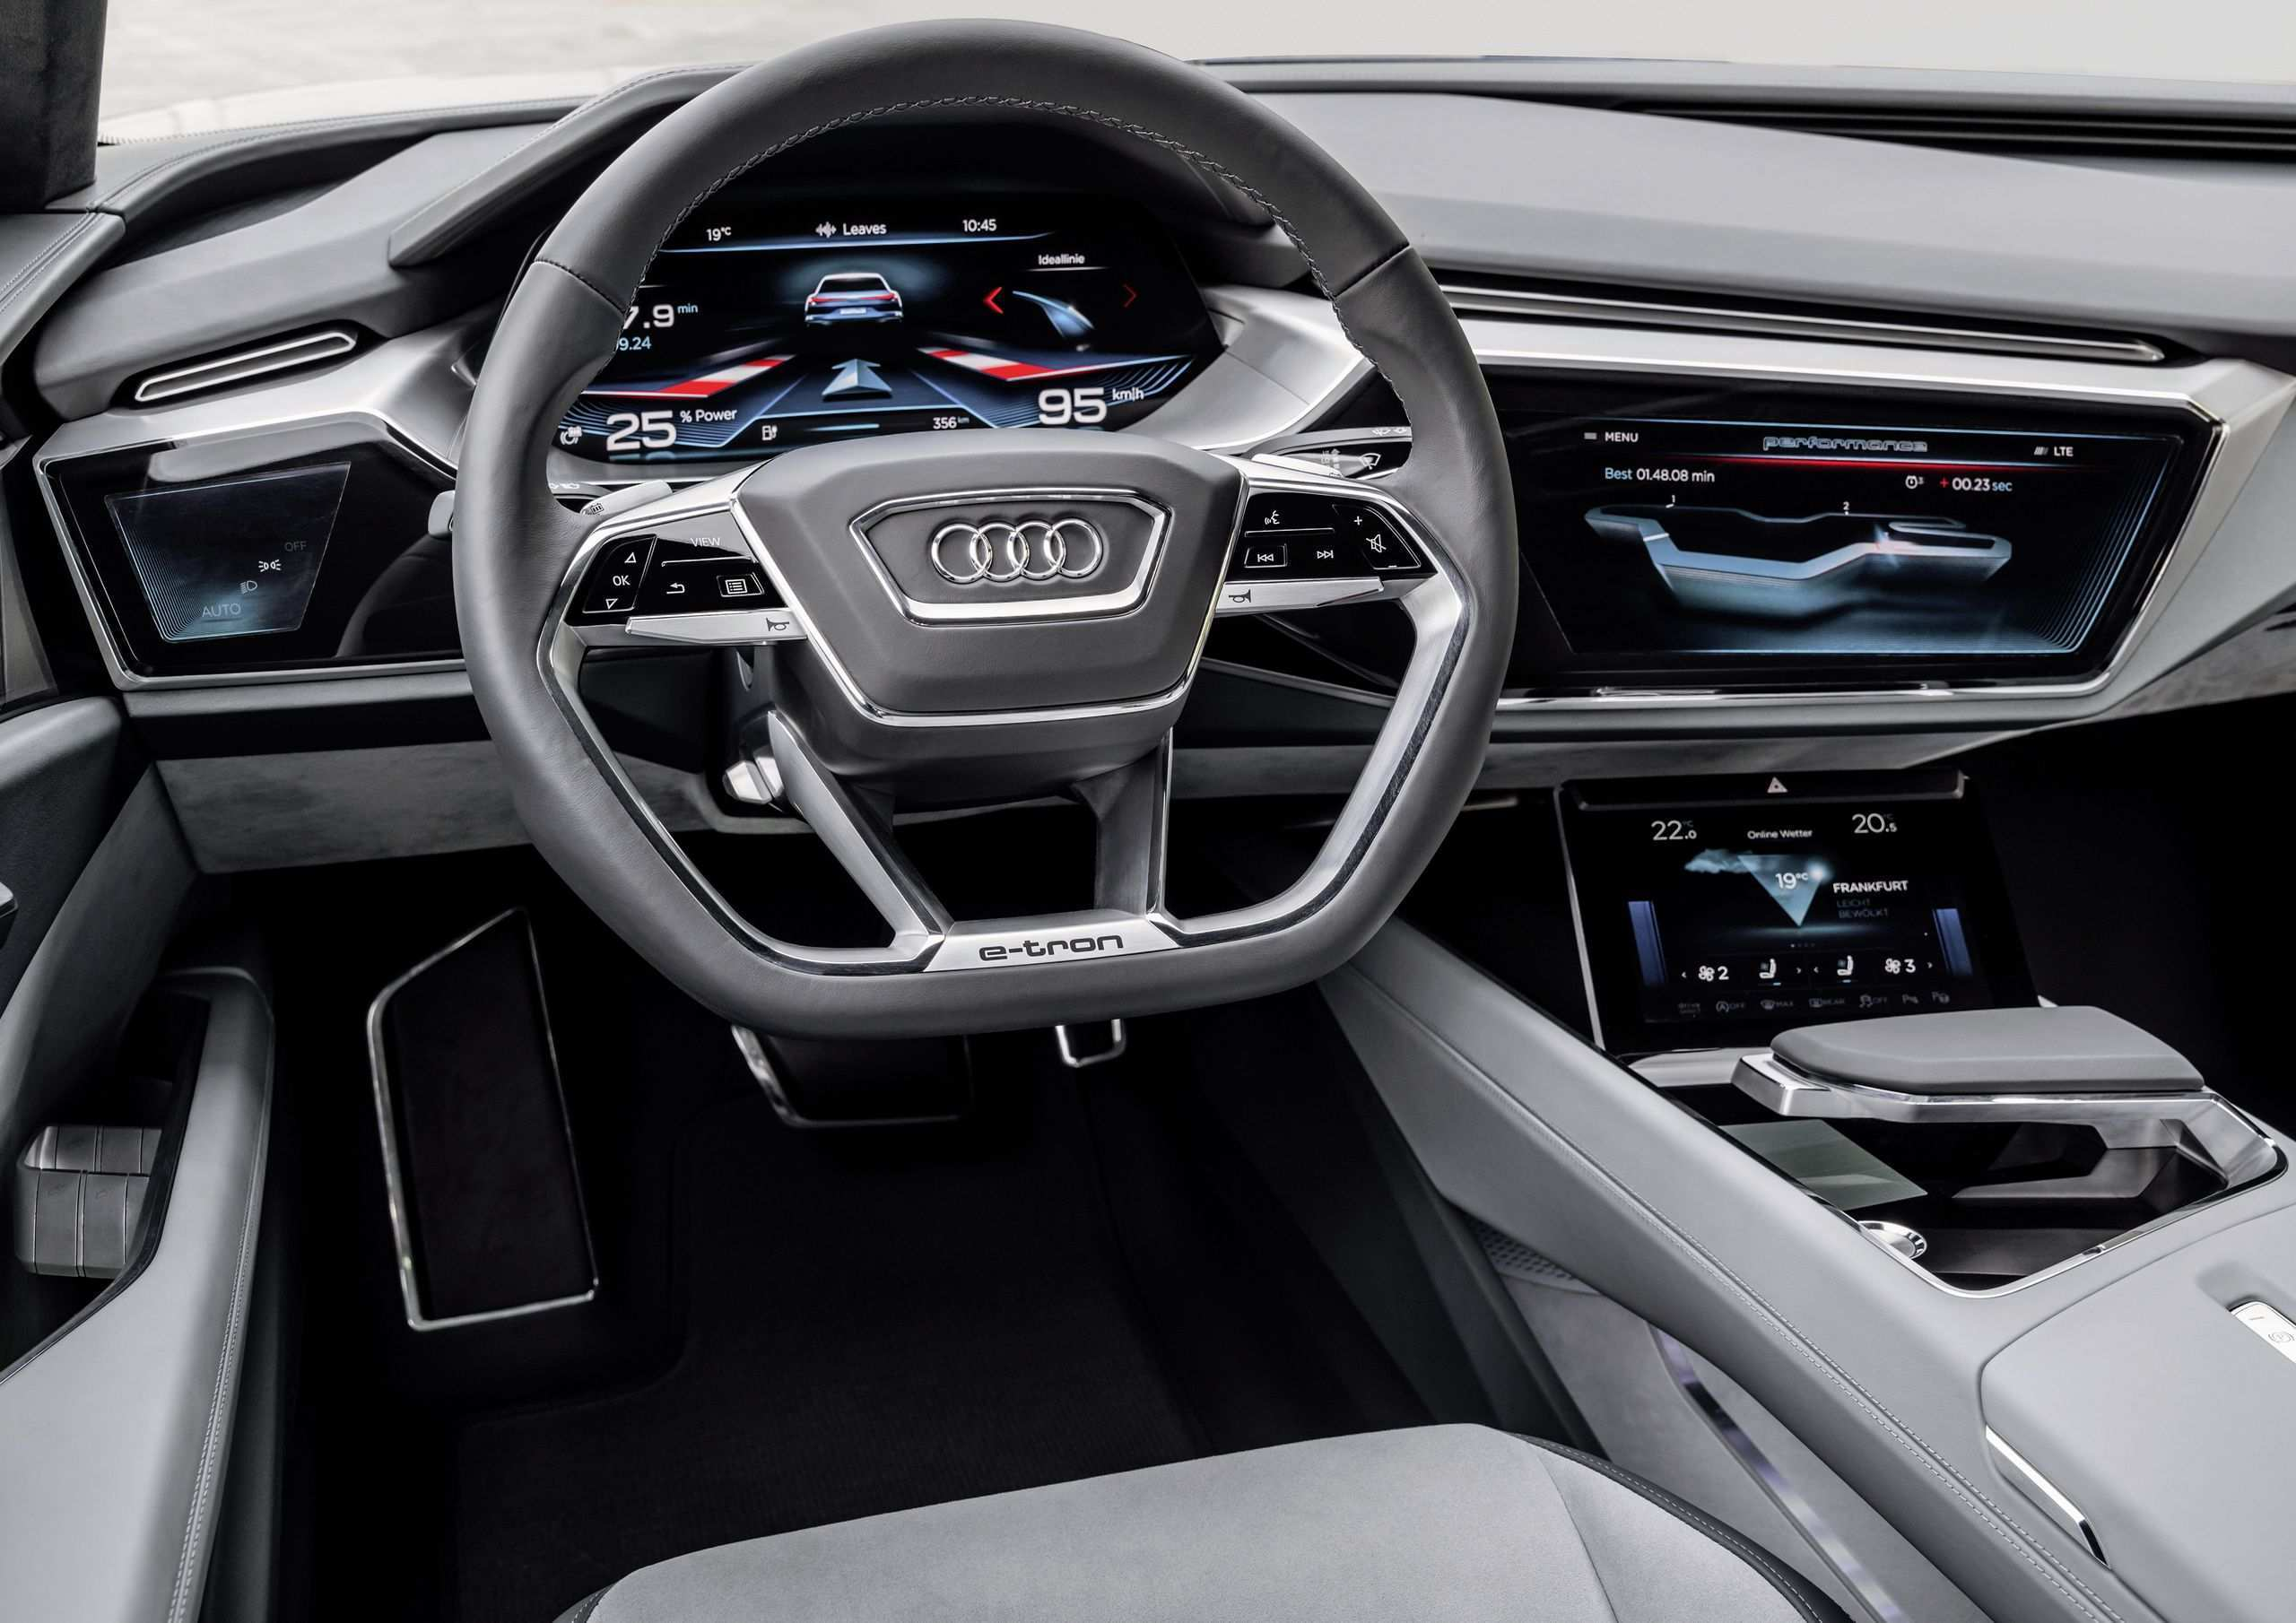 49 Great 2019 Audi E Tron Quattro First Drive with 2019 Audi E Tron Quattro